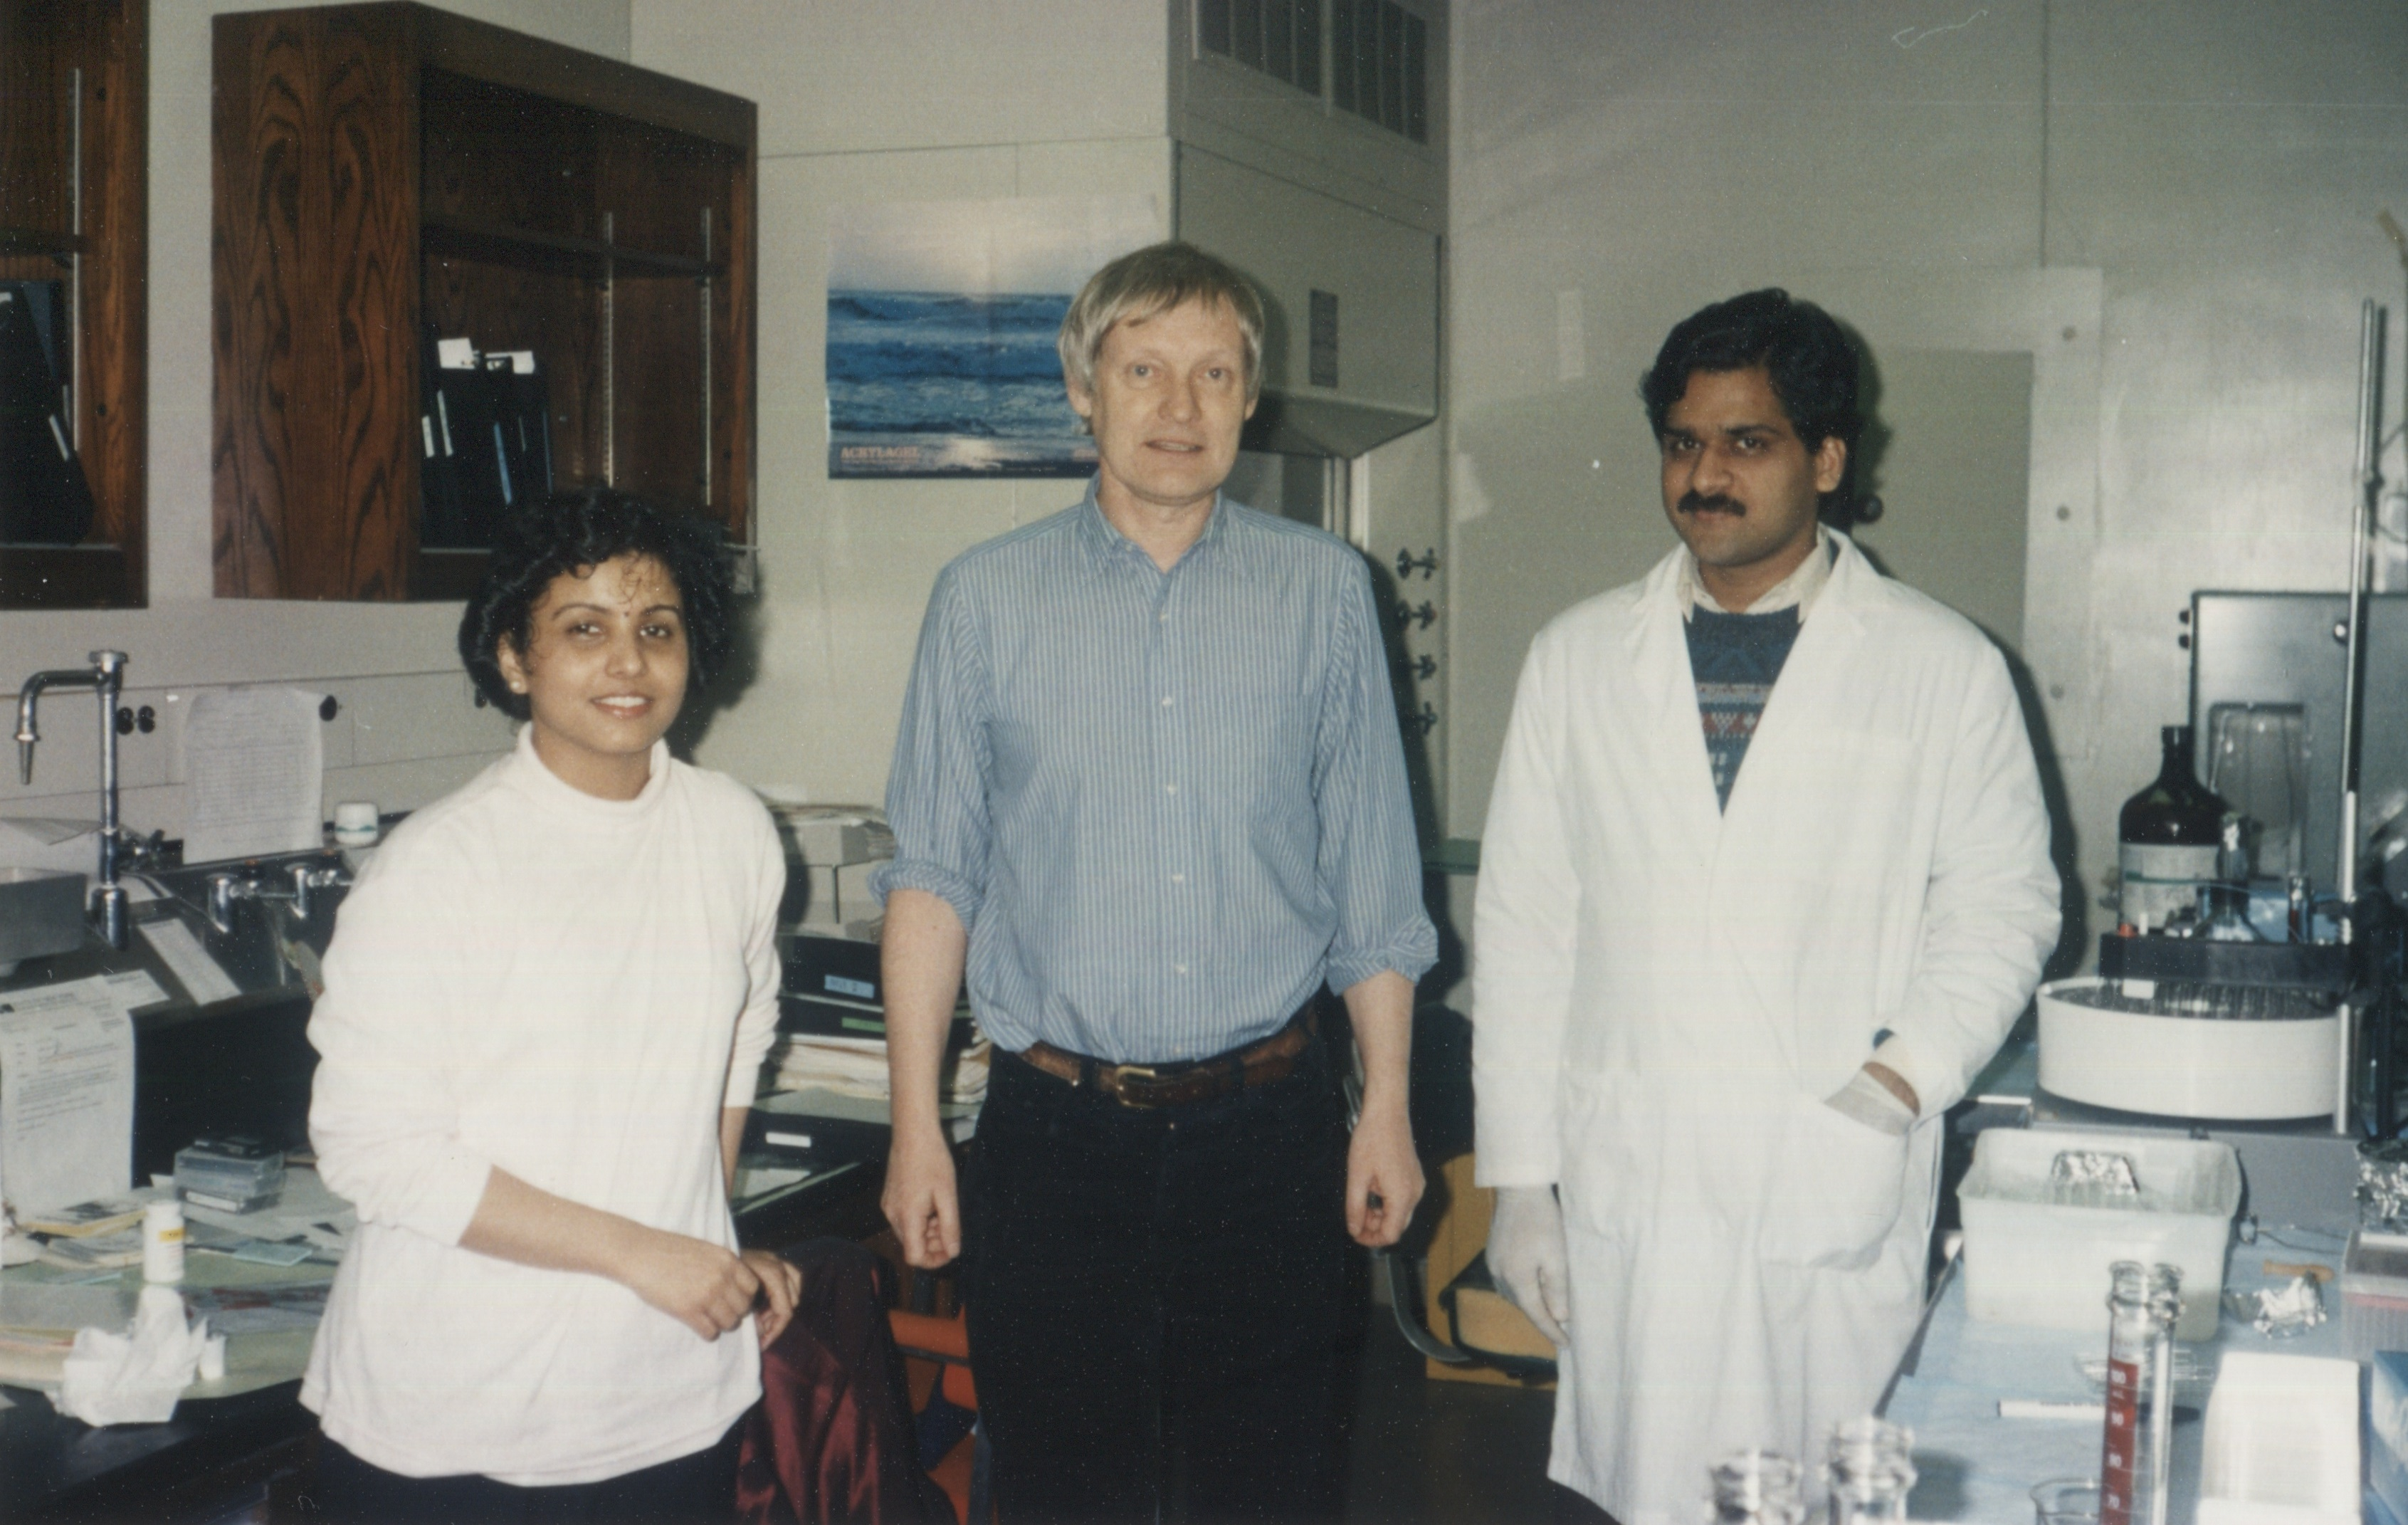 Dr. Frank at Wadsworth Center in 1995.